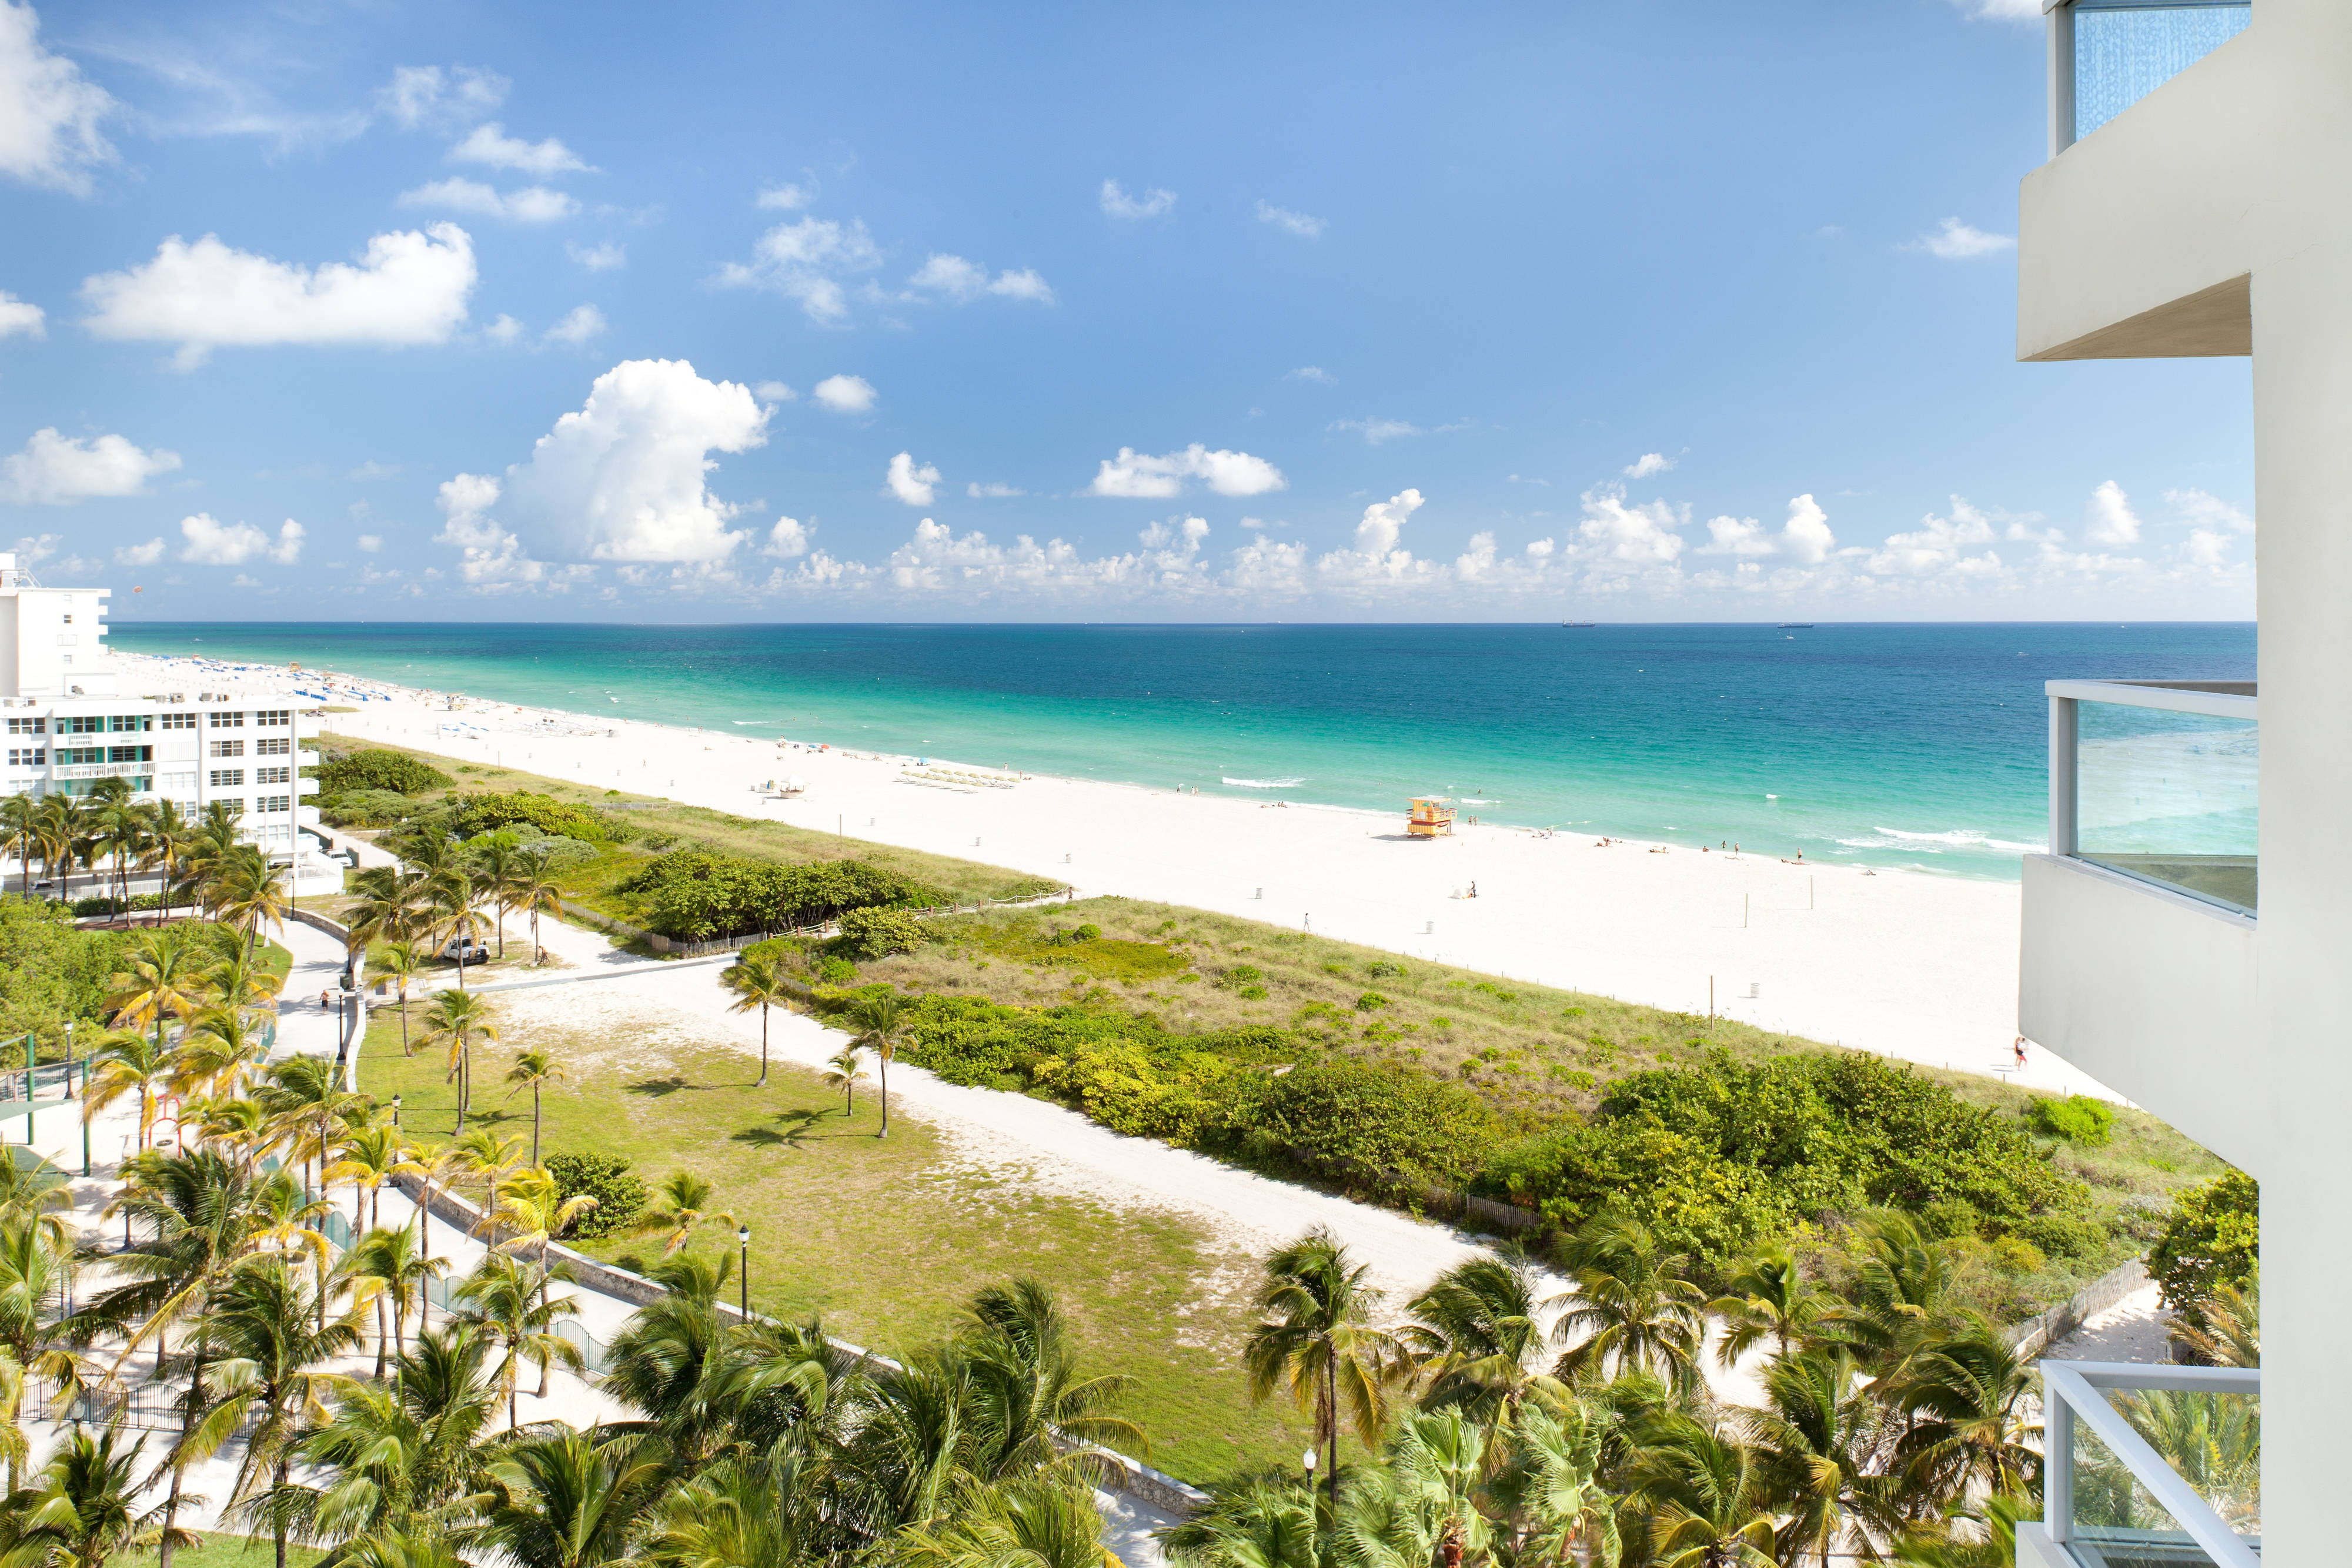 Miami Oceanfront Hotels